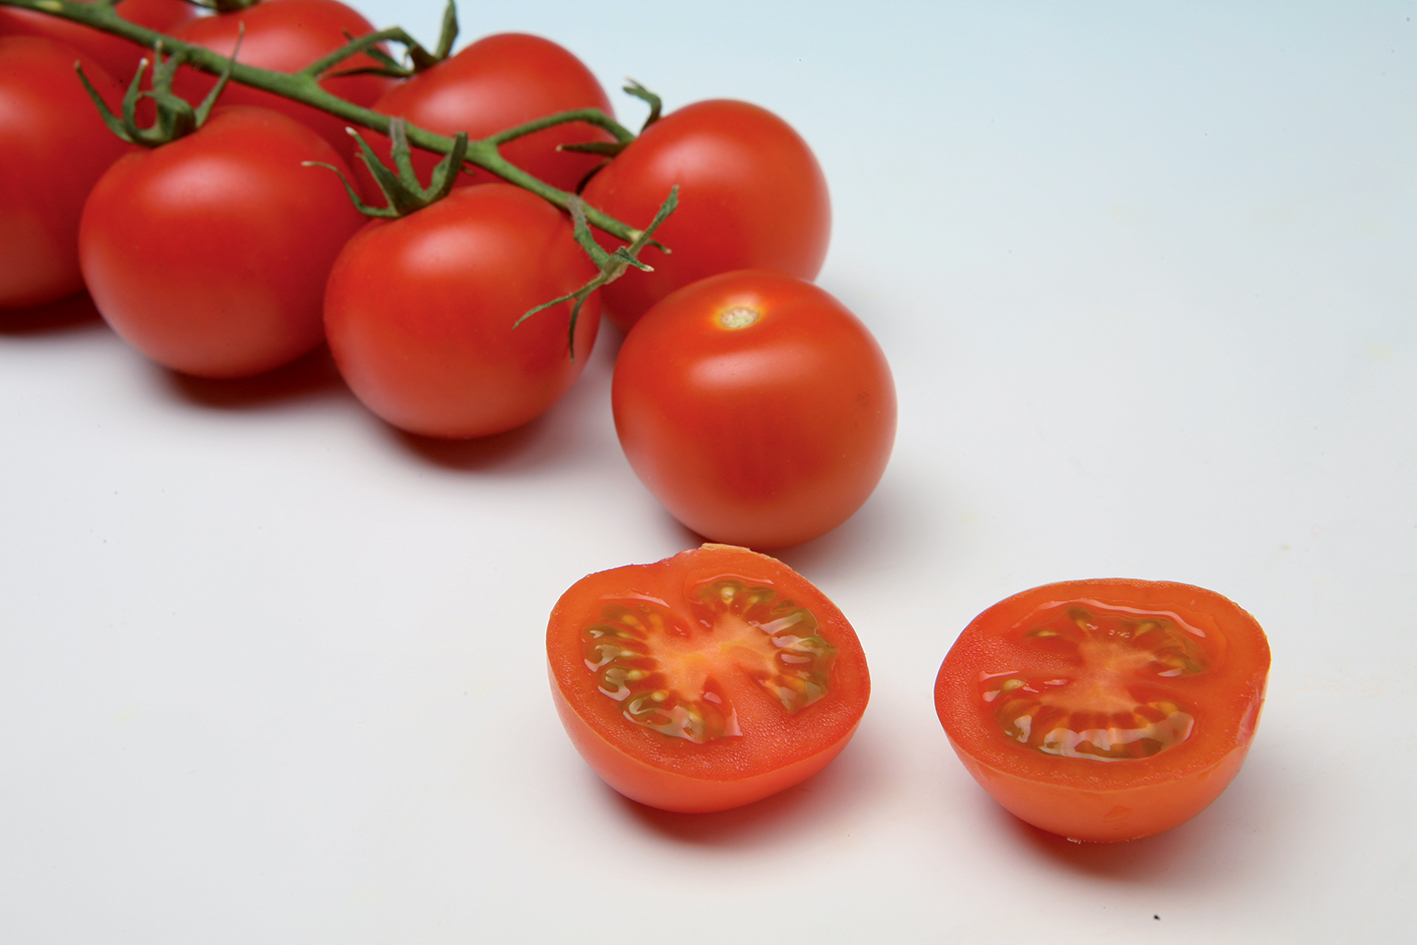 Clause's Genio, Creativo, Dolcetini cherry tomatoes meet the challenges facing food retailing